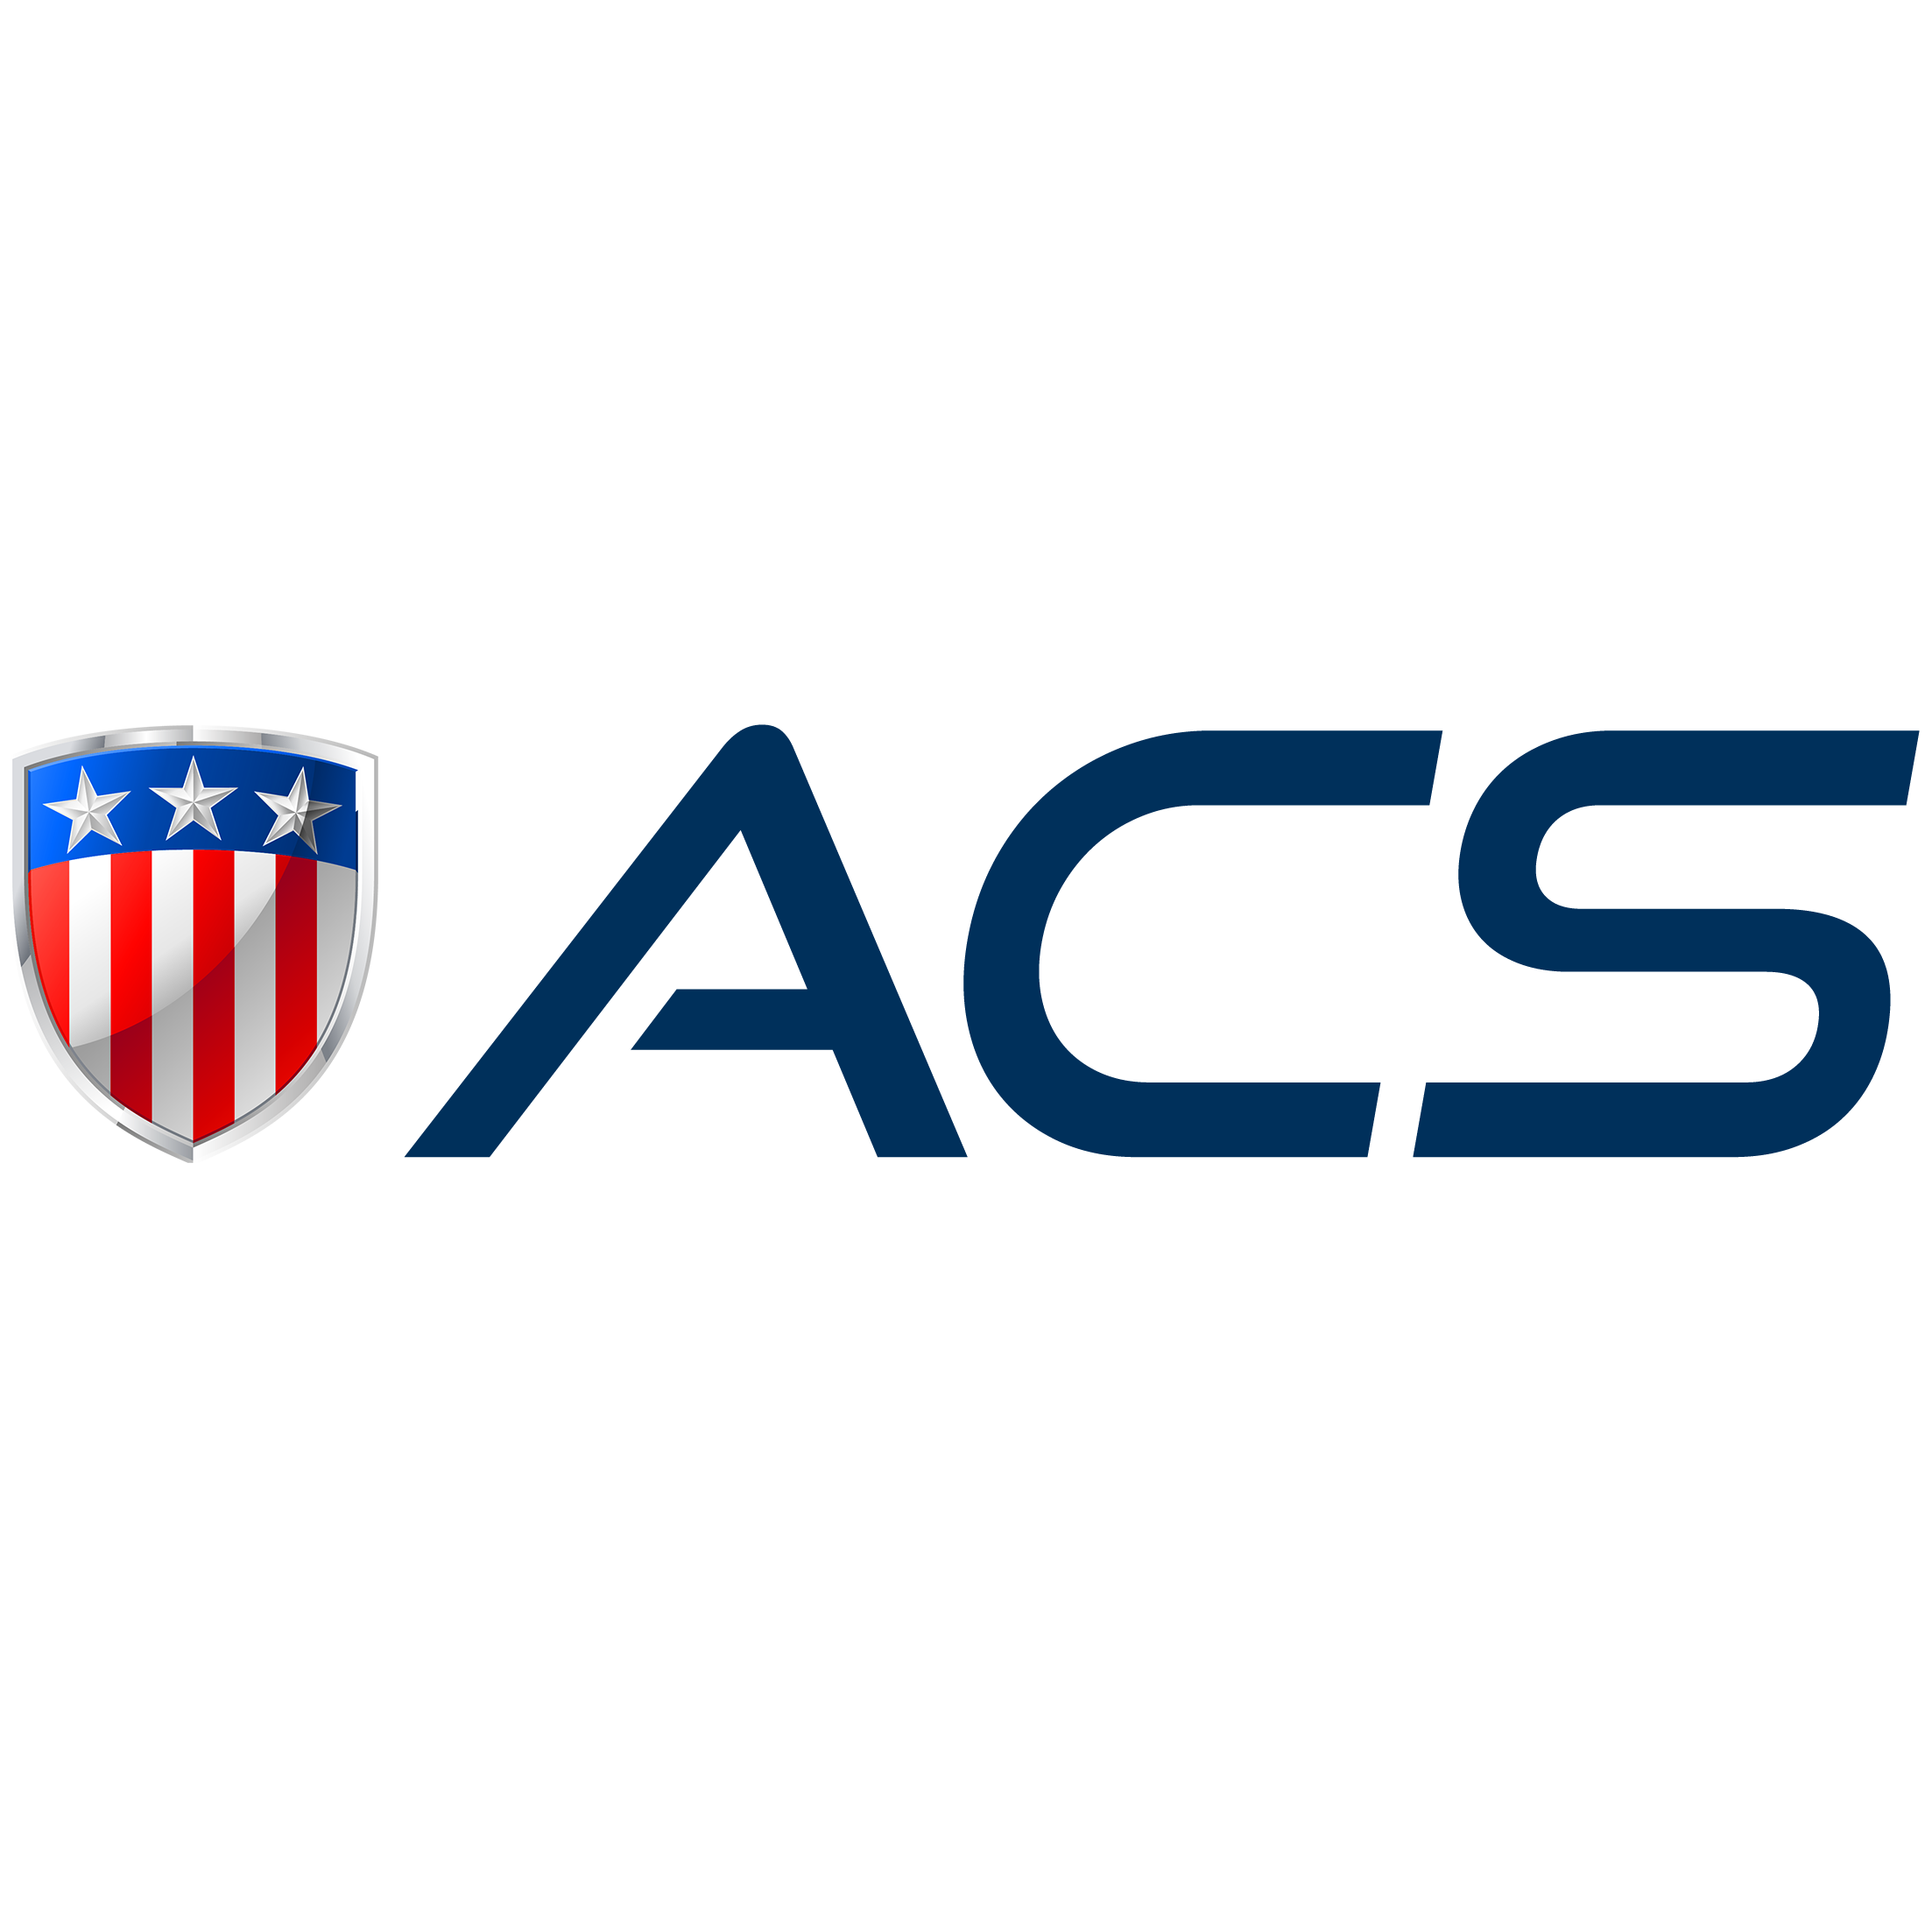 American Credit Systems